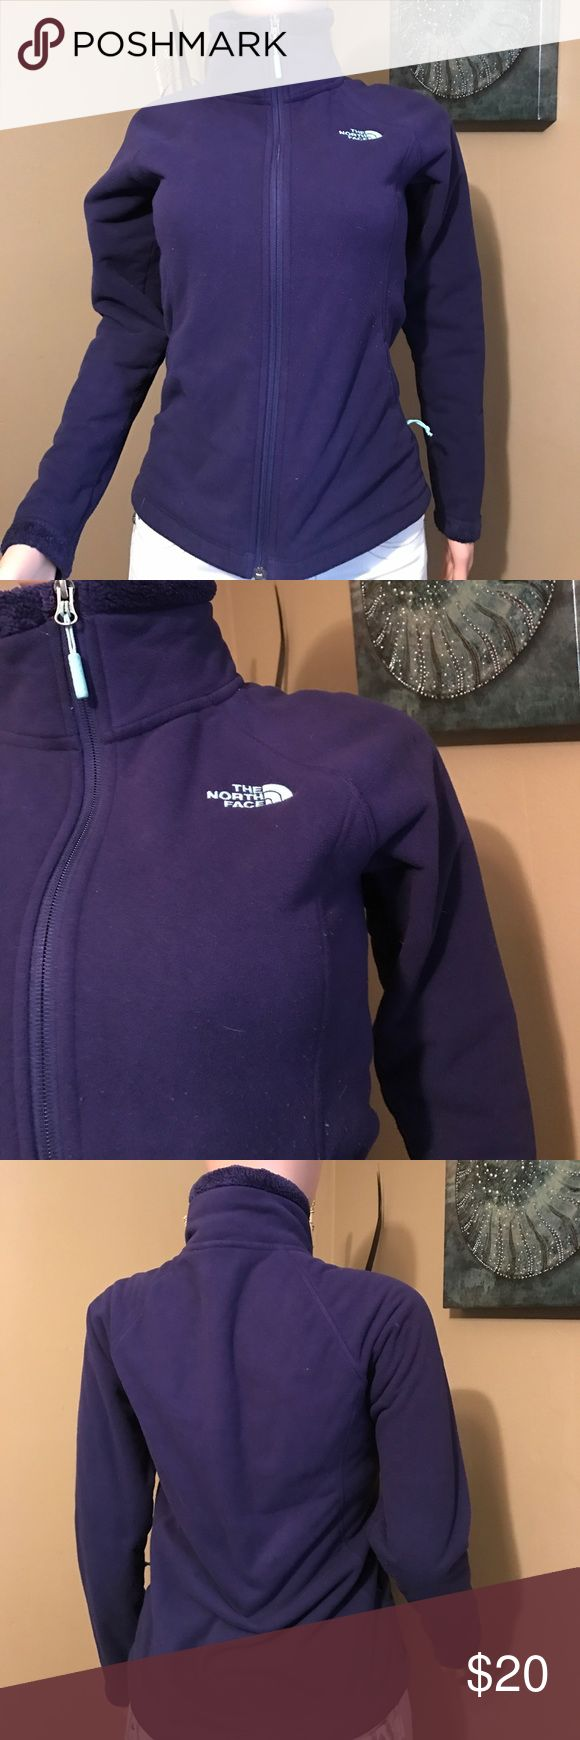 The North Face In great condition The North Face Jackets & Coats